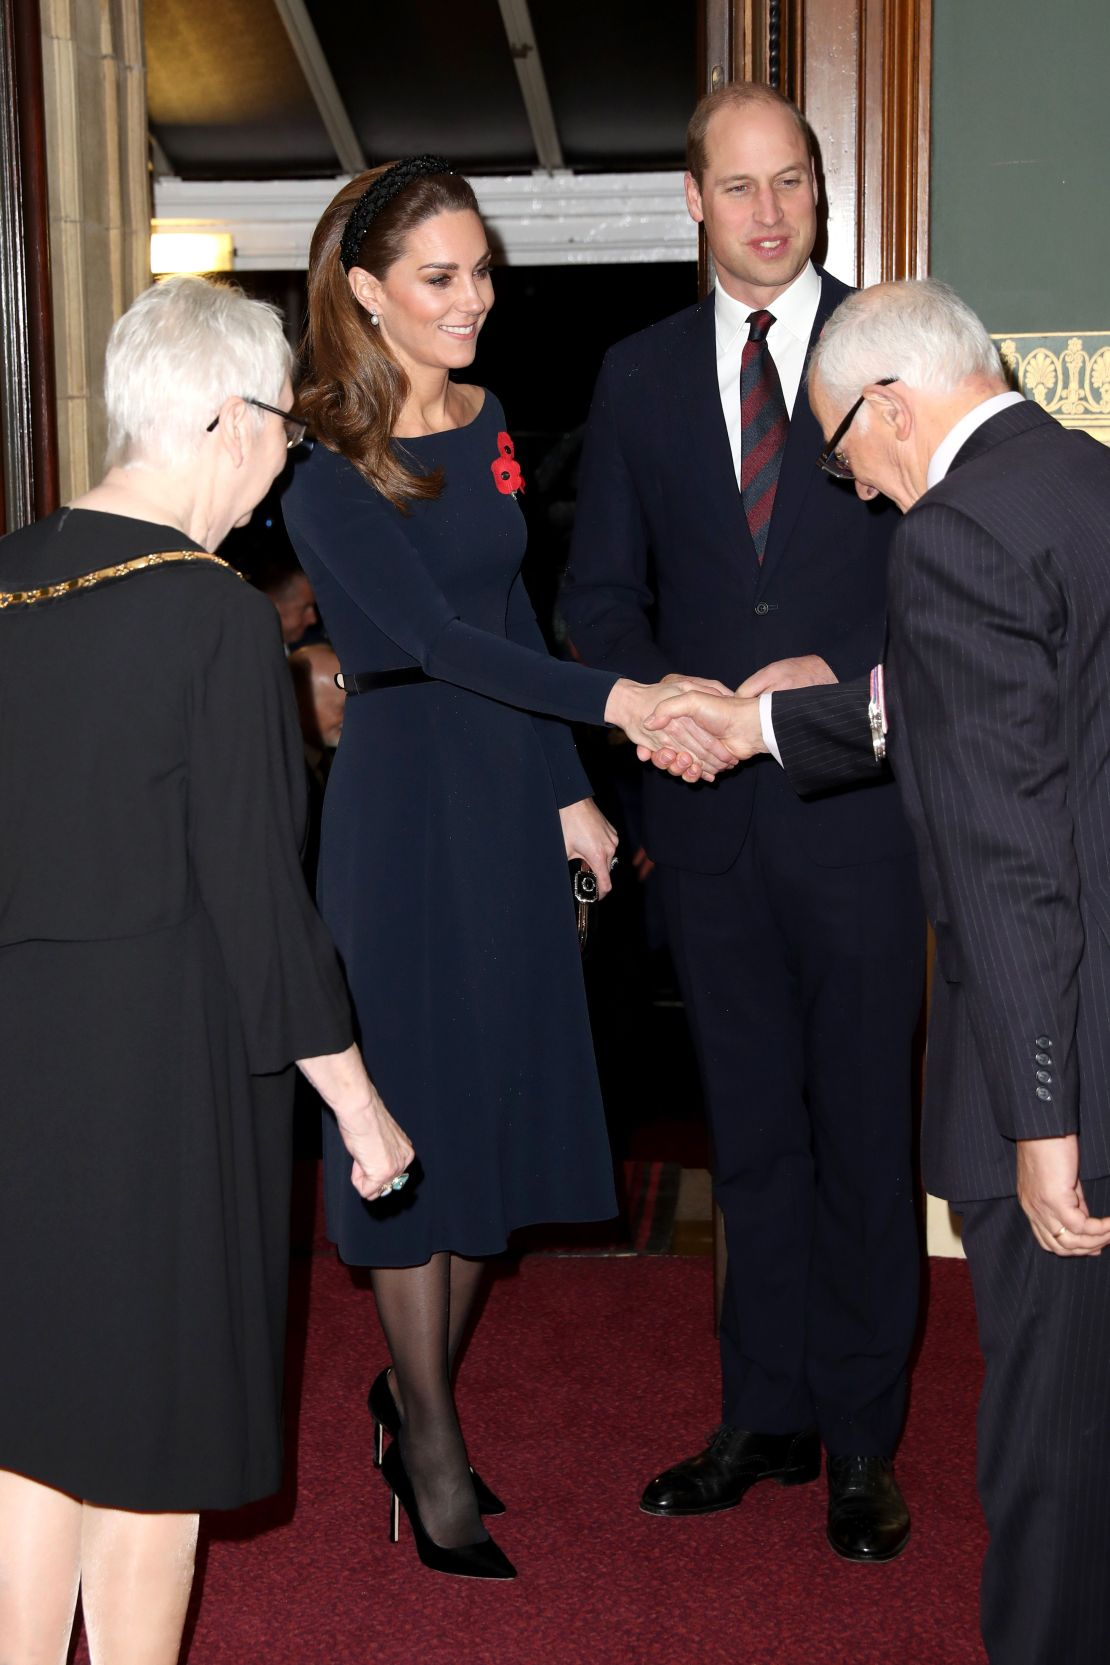 The Queen And Members Of The Royal Family Attend The Annual Royal British Legion Festival Of Remembrance